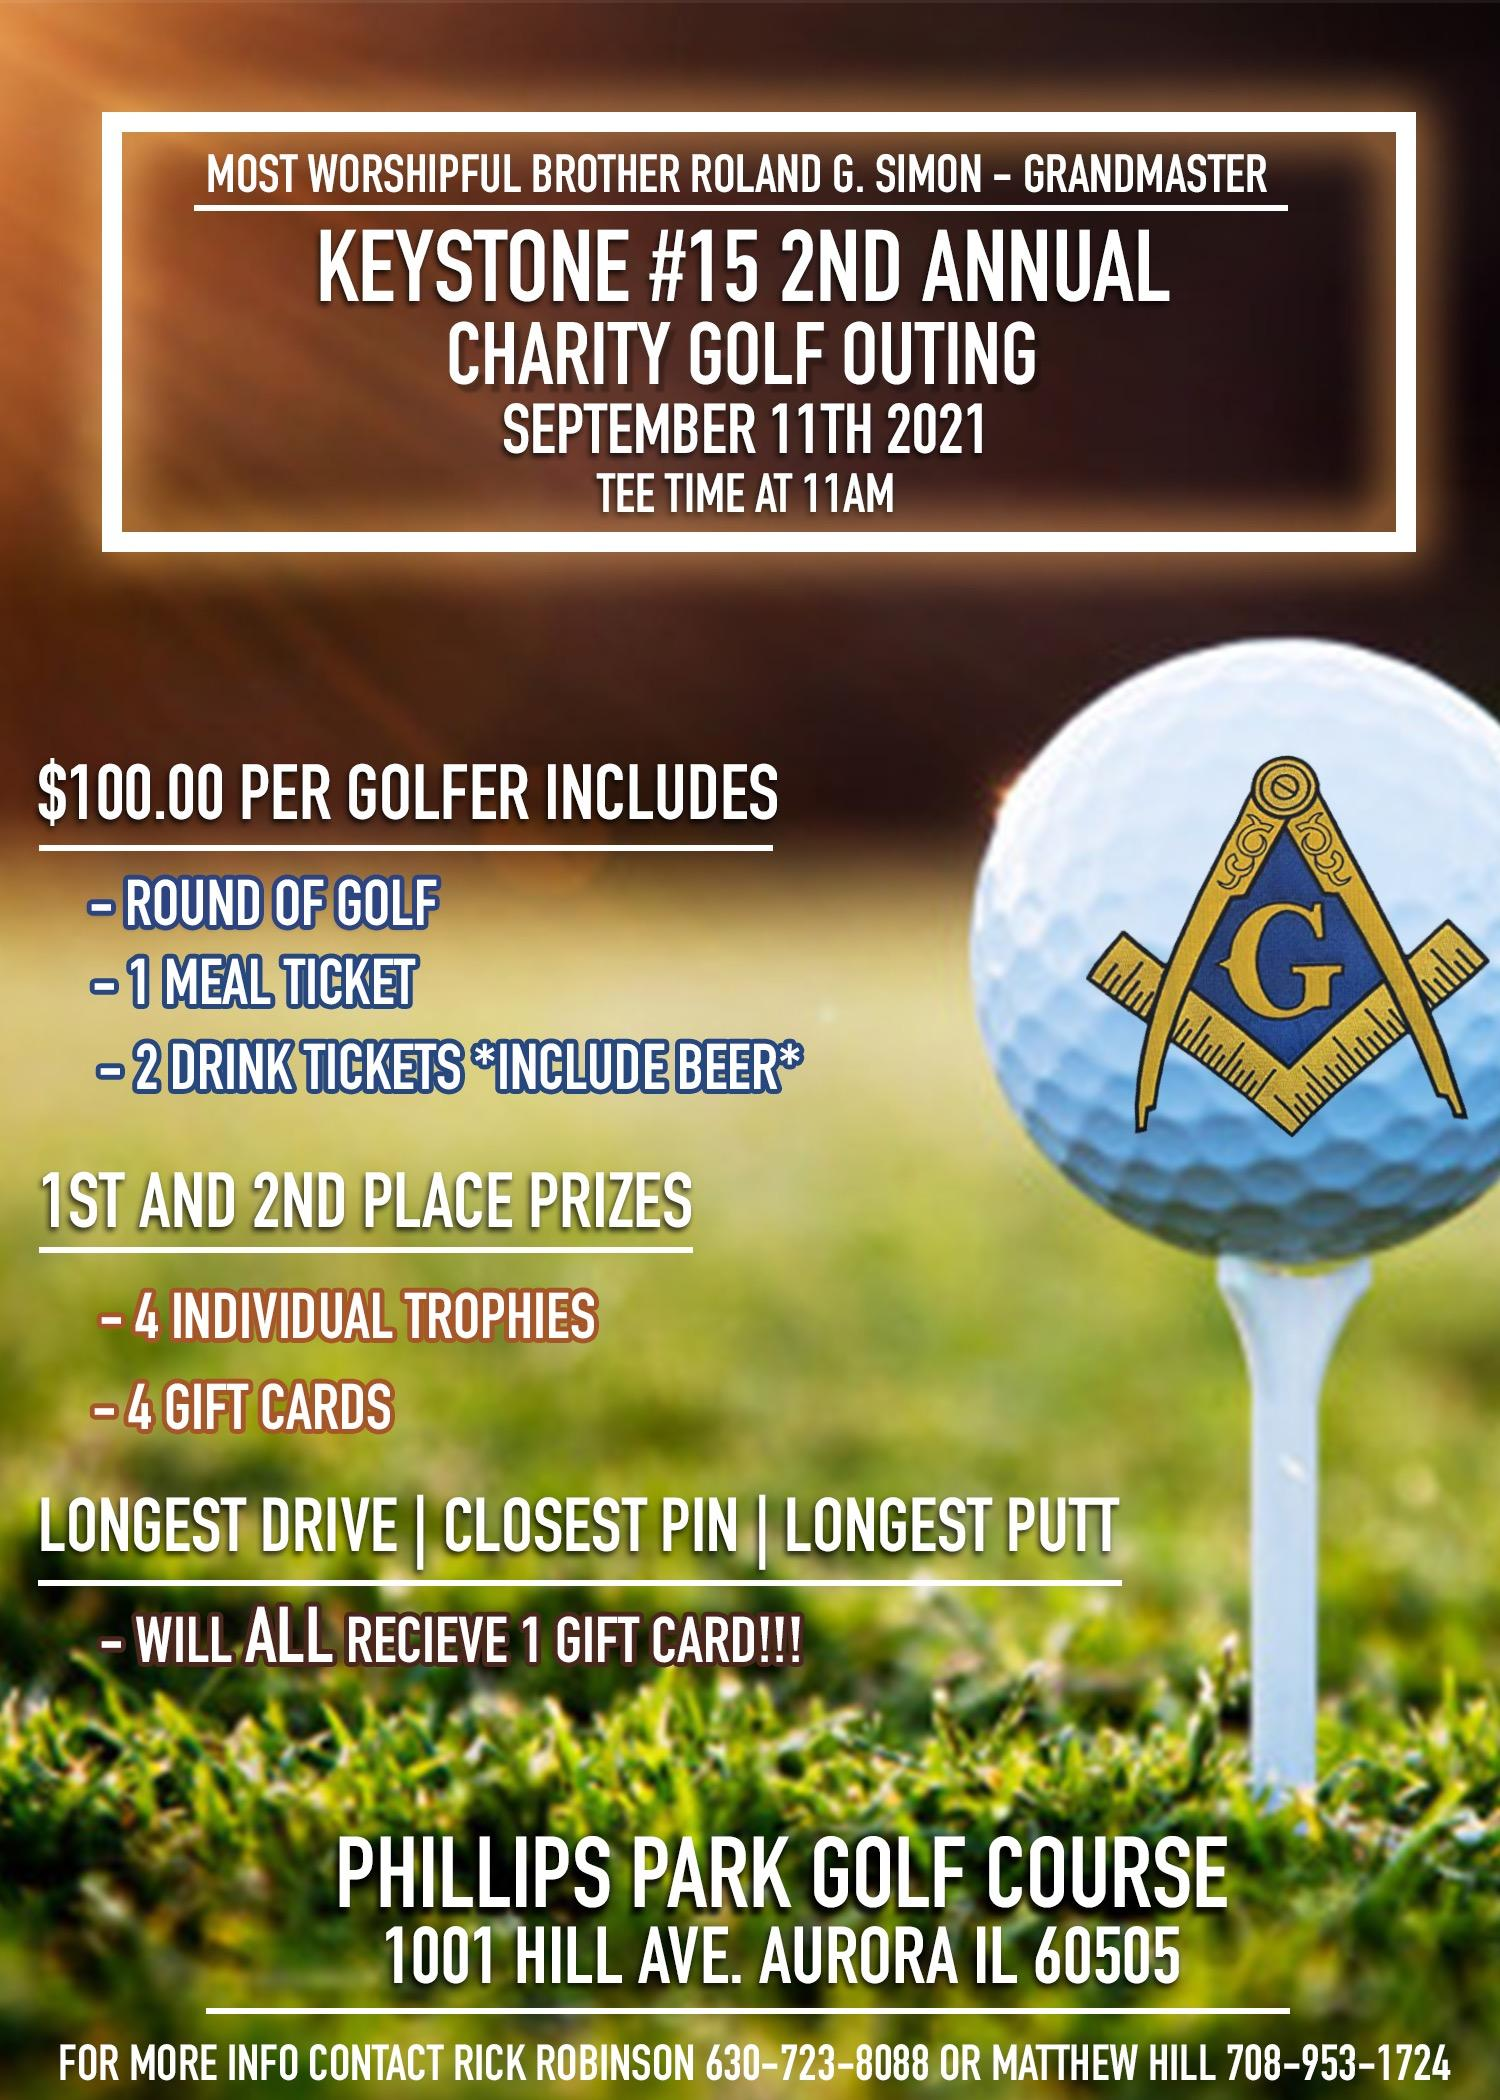 Keystone Lodge #15's second Annual charitable Golf Outing